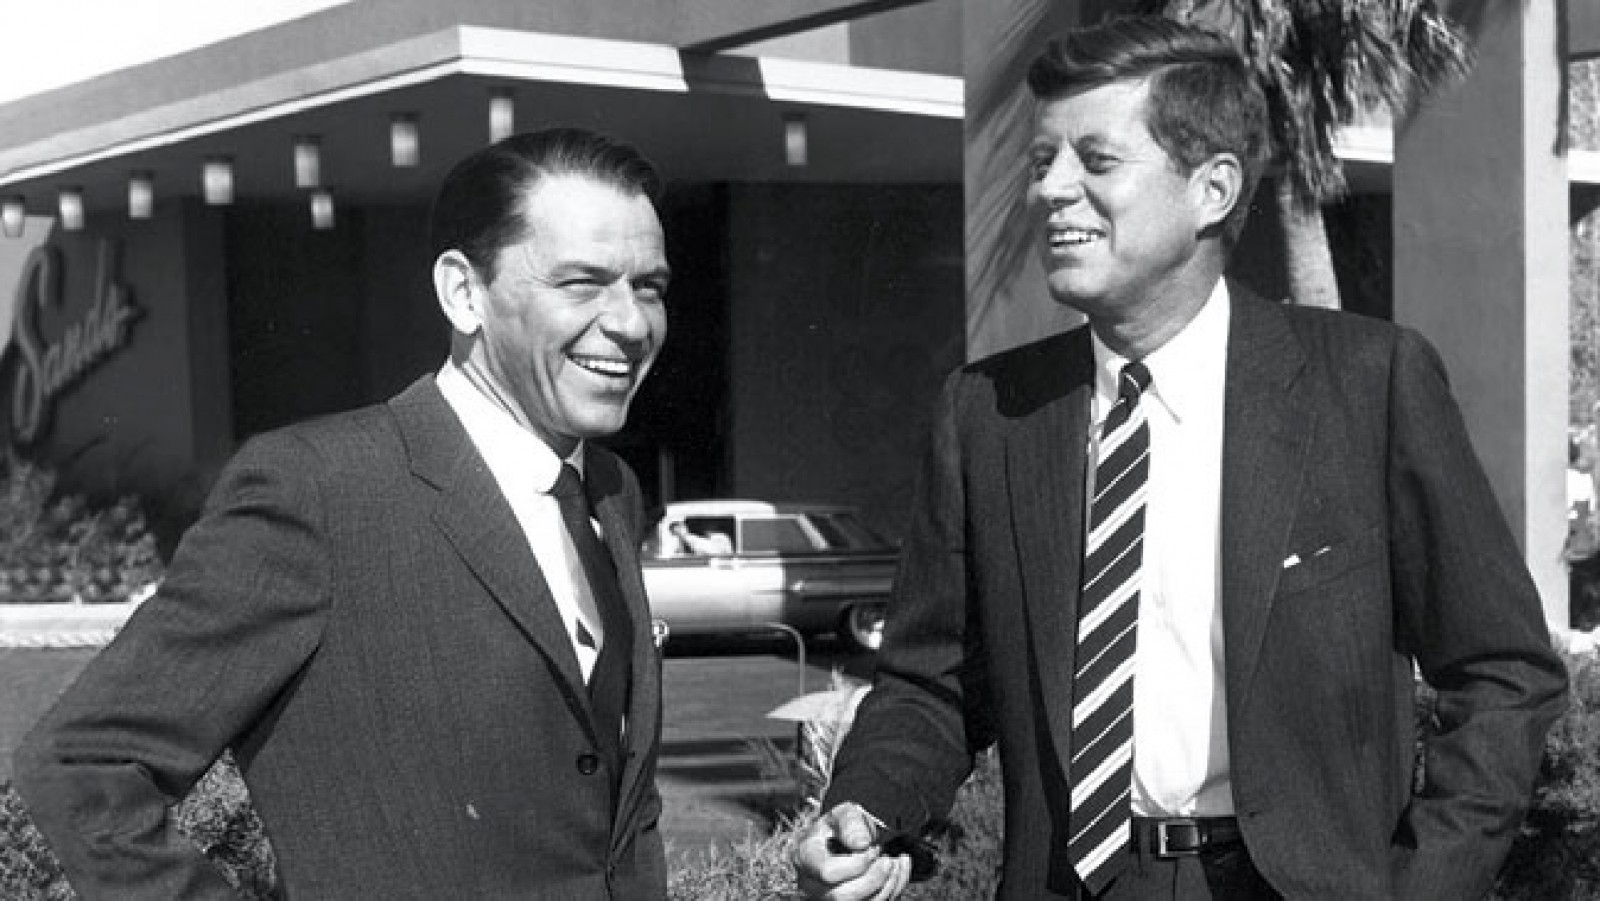 frank-sinatra-and-kennedy-1